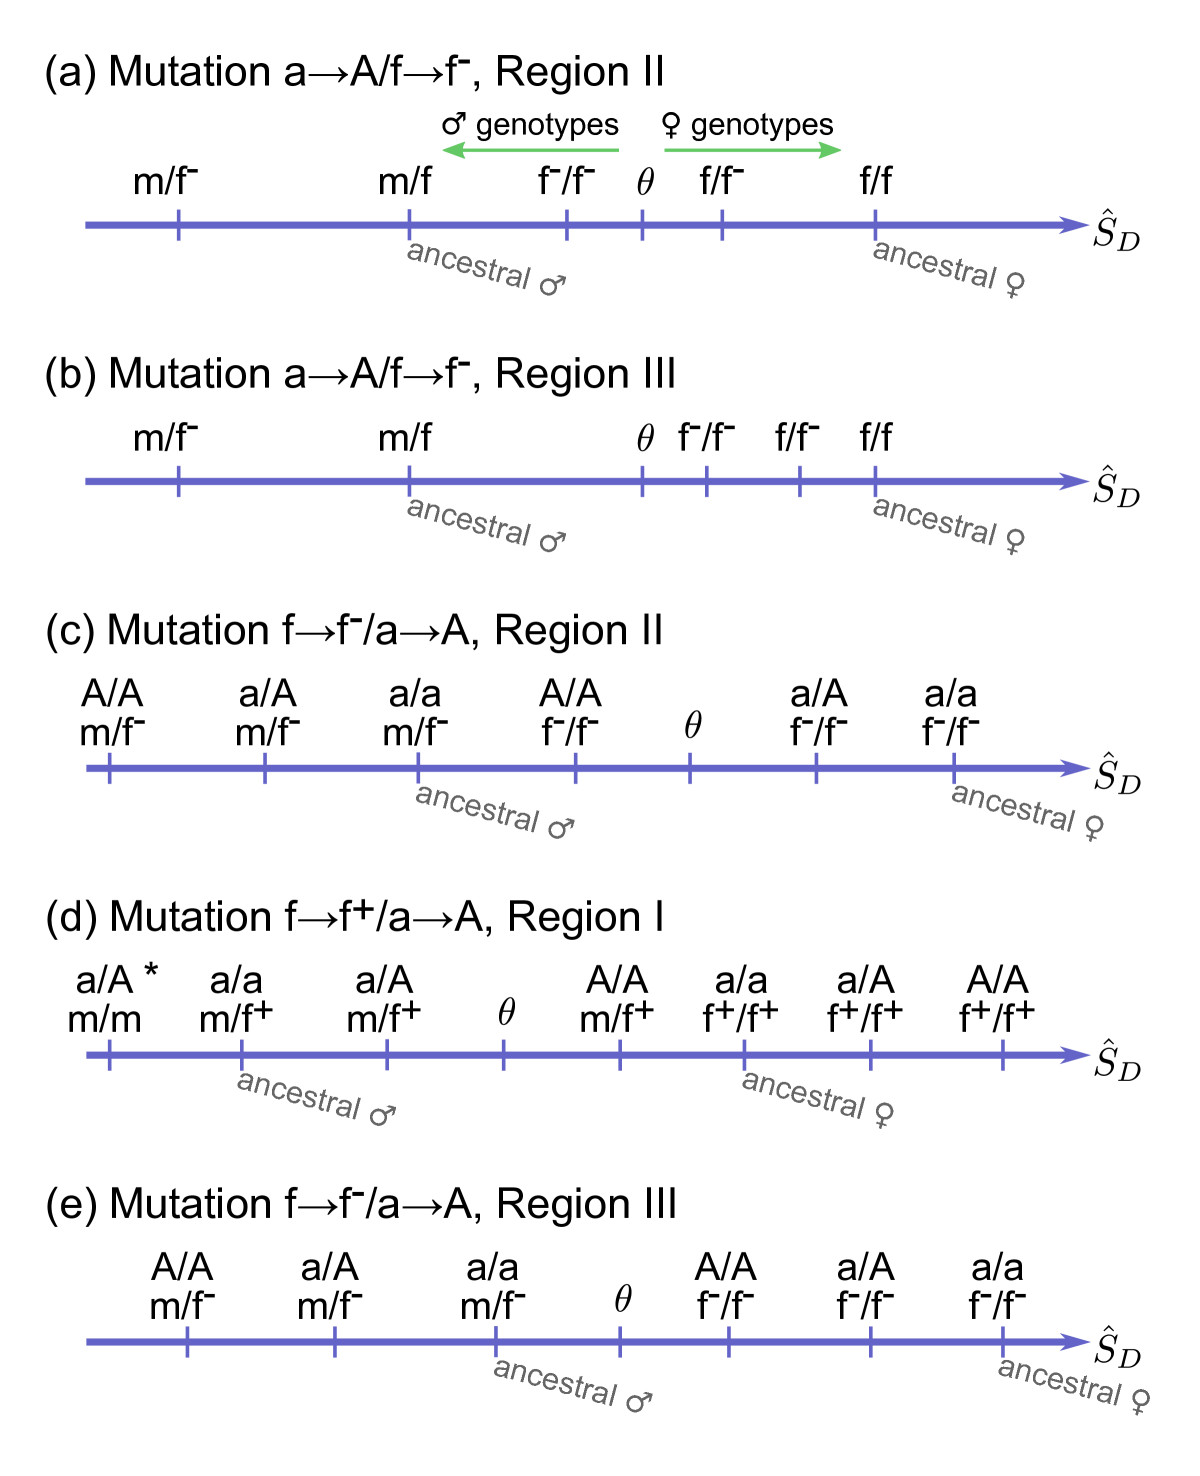 http://static-content.springer.com/image/art%3A10.1186%2F1471-2148-10-388/MediaObjects/12862_2010_Article_1603_Fig5_HTML.jpg